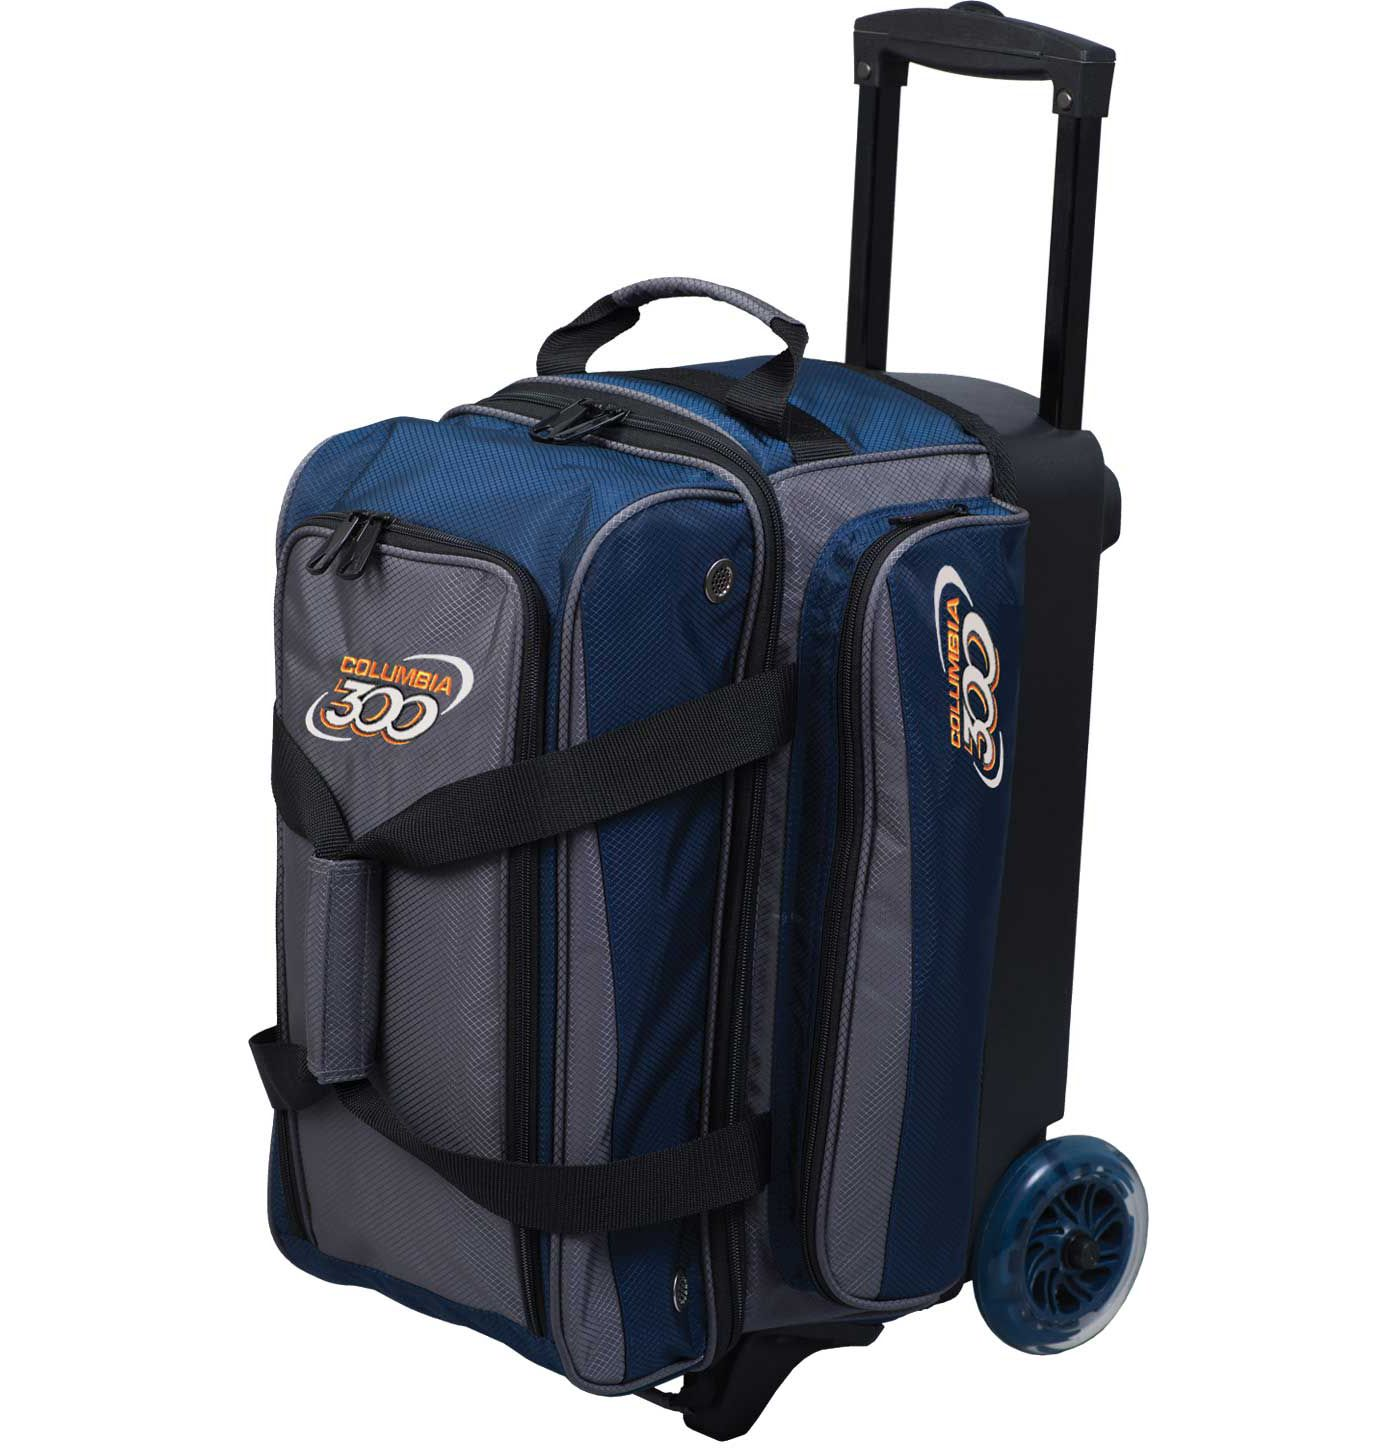 Columbia 300 Icon 2-Ball Roller Bowling Bag